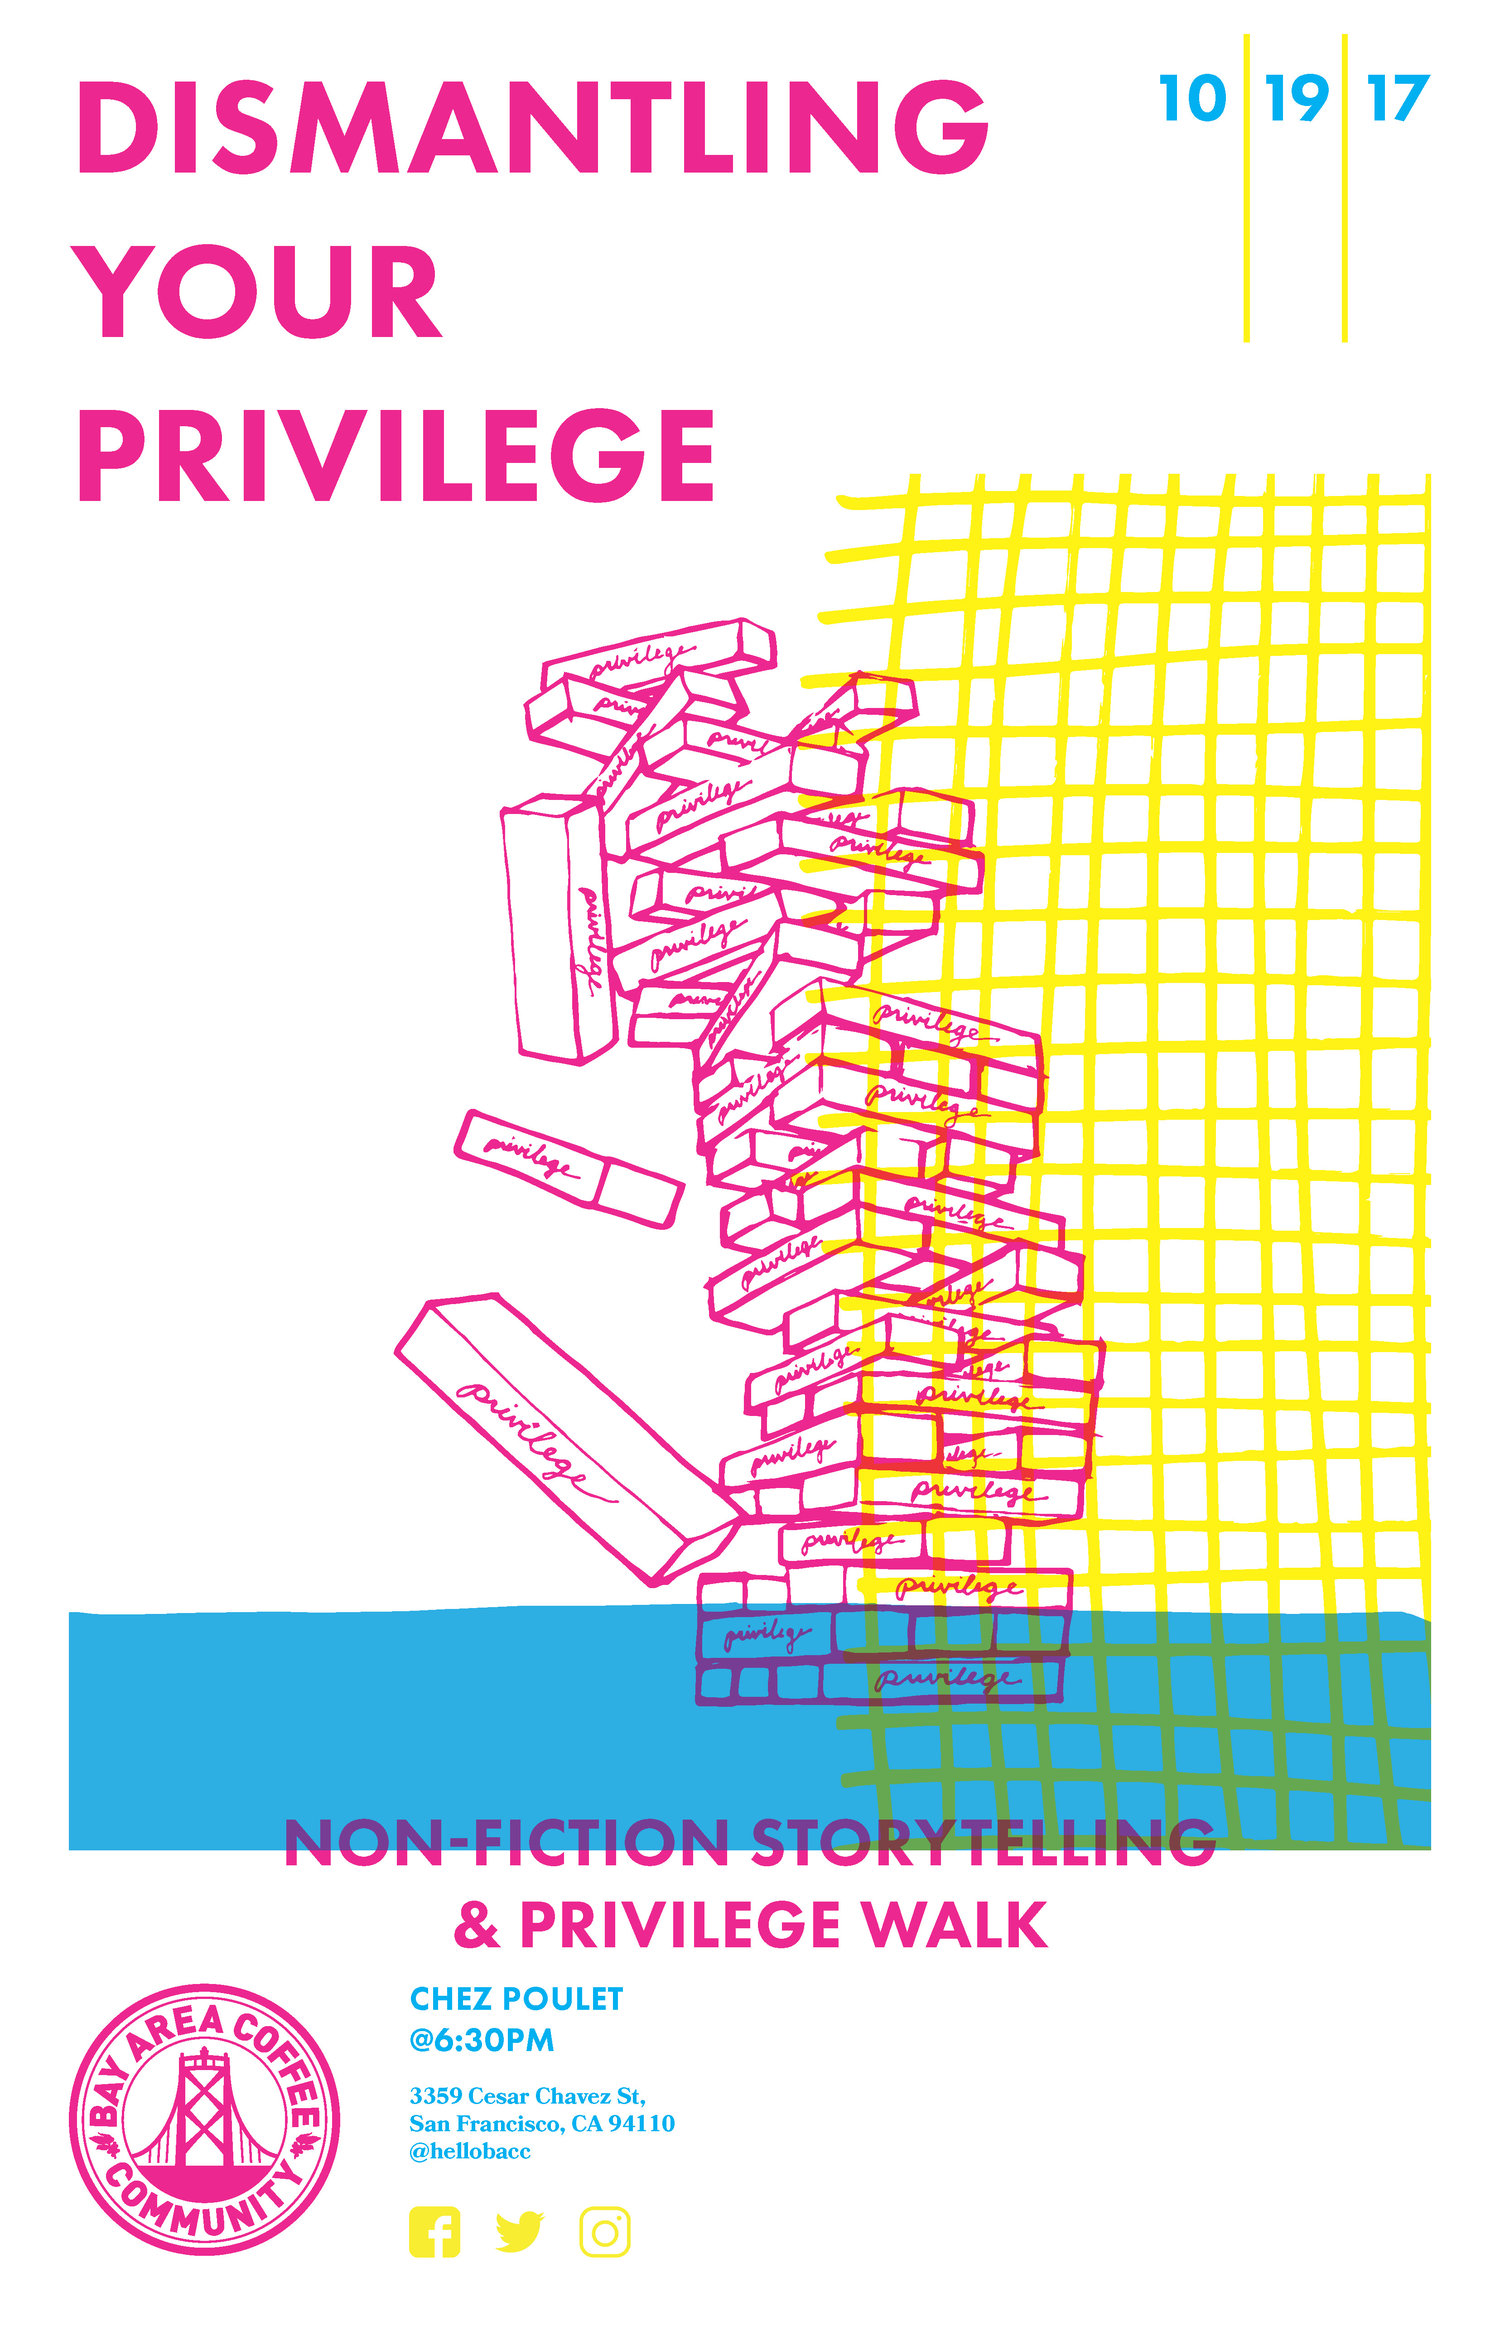 170926+11x17+Dismantling+Your+Privilege+-+Draft.jpg